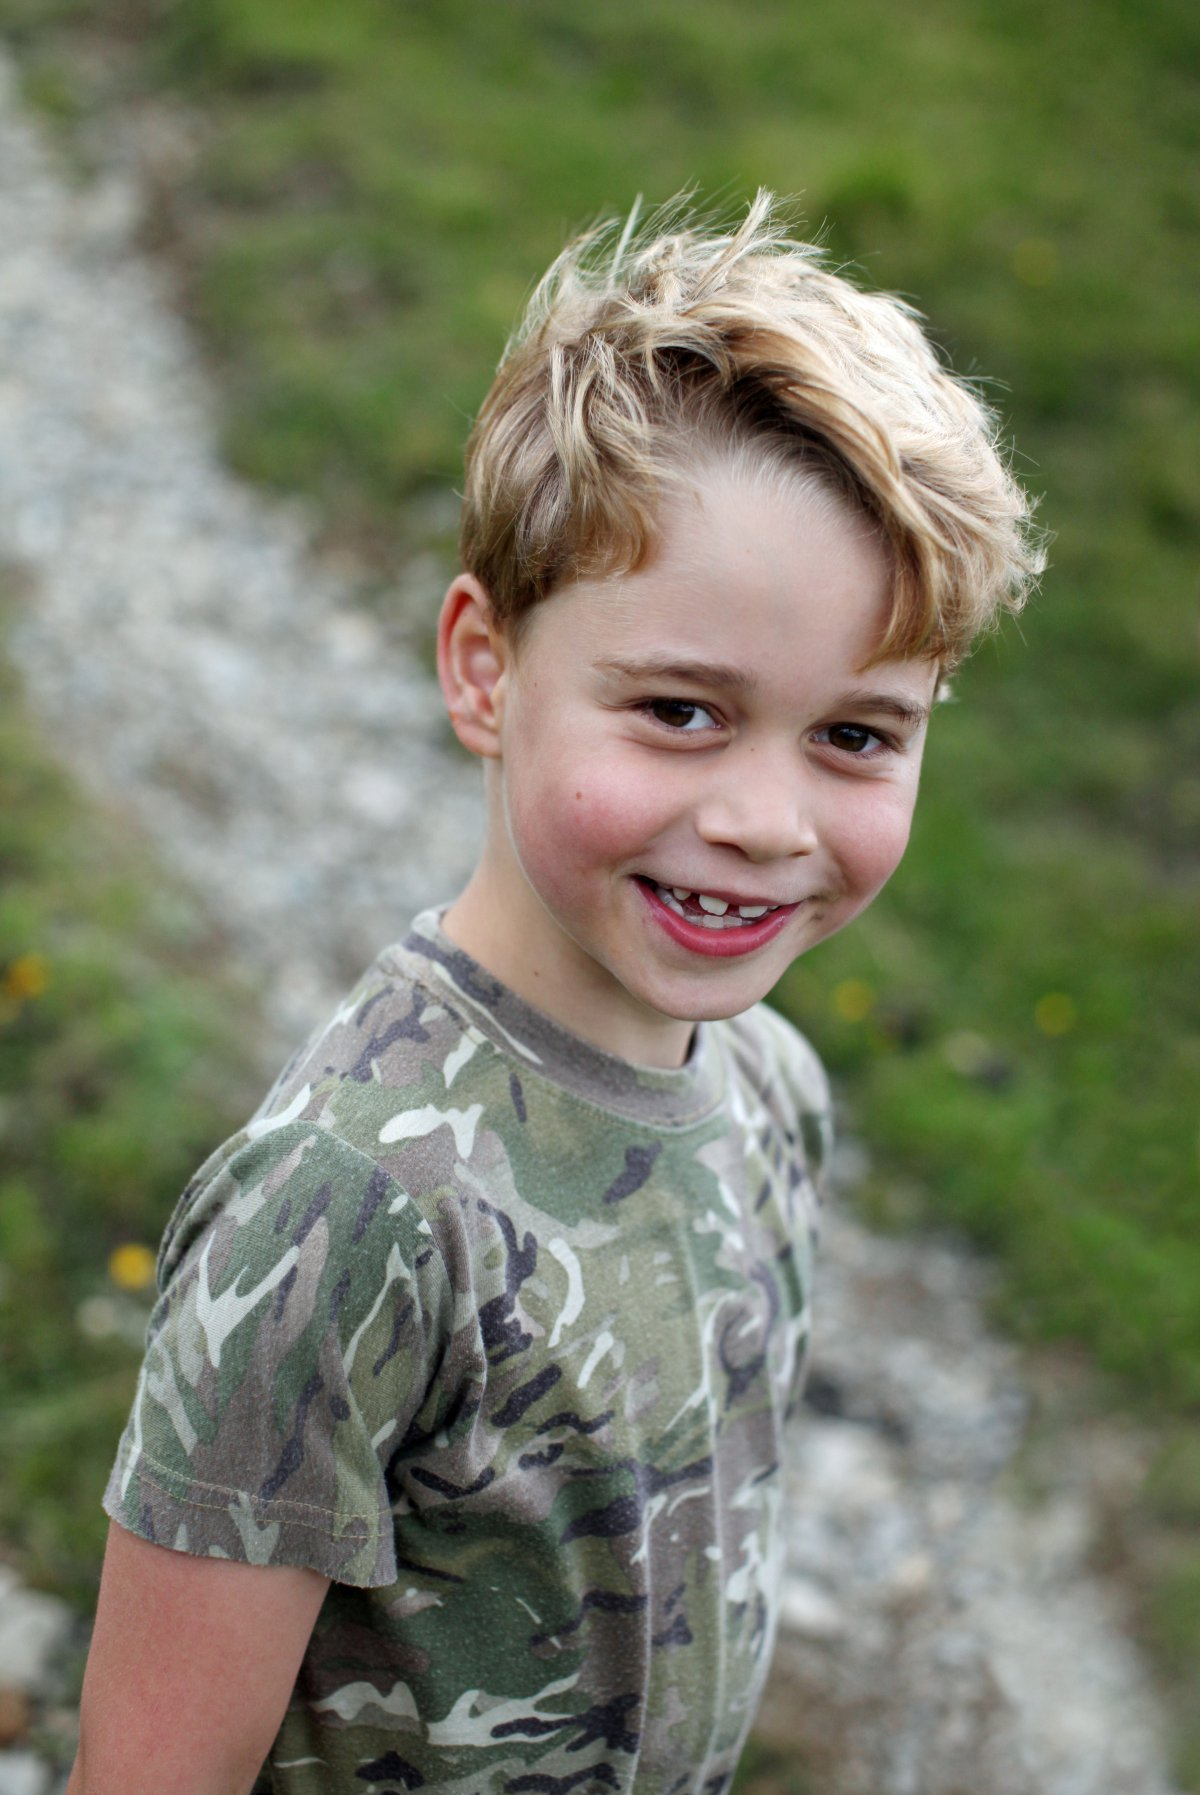 Britain's Prince George, whose seventh birthday is on Wednesday, is seen in this picture taken by his mother, the Duchess of Cambridge, earlier this month and released July 21, 2020.